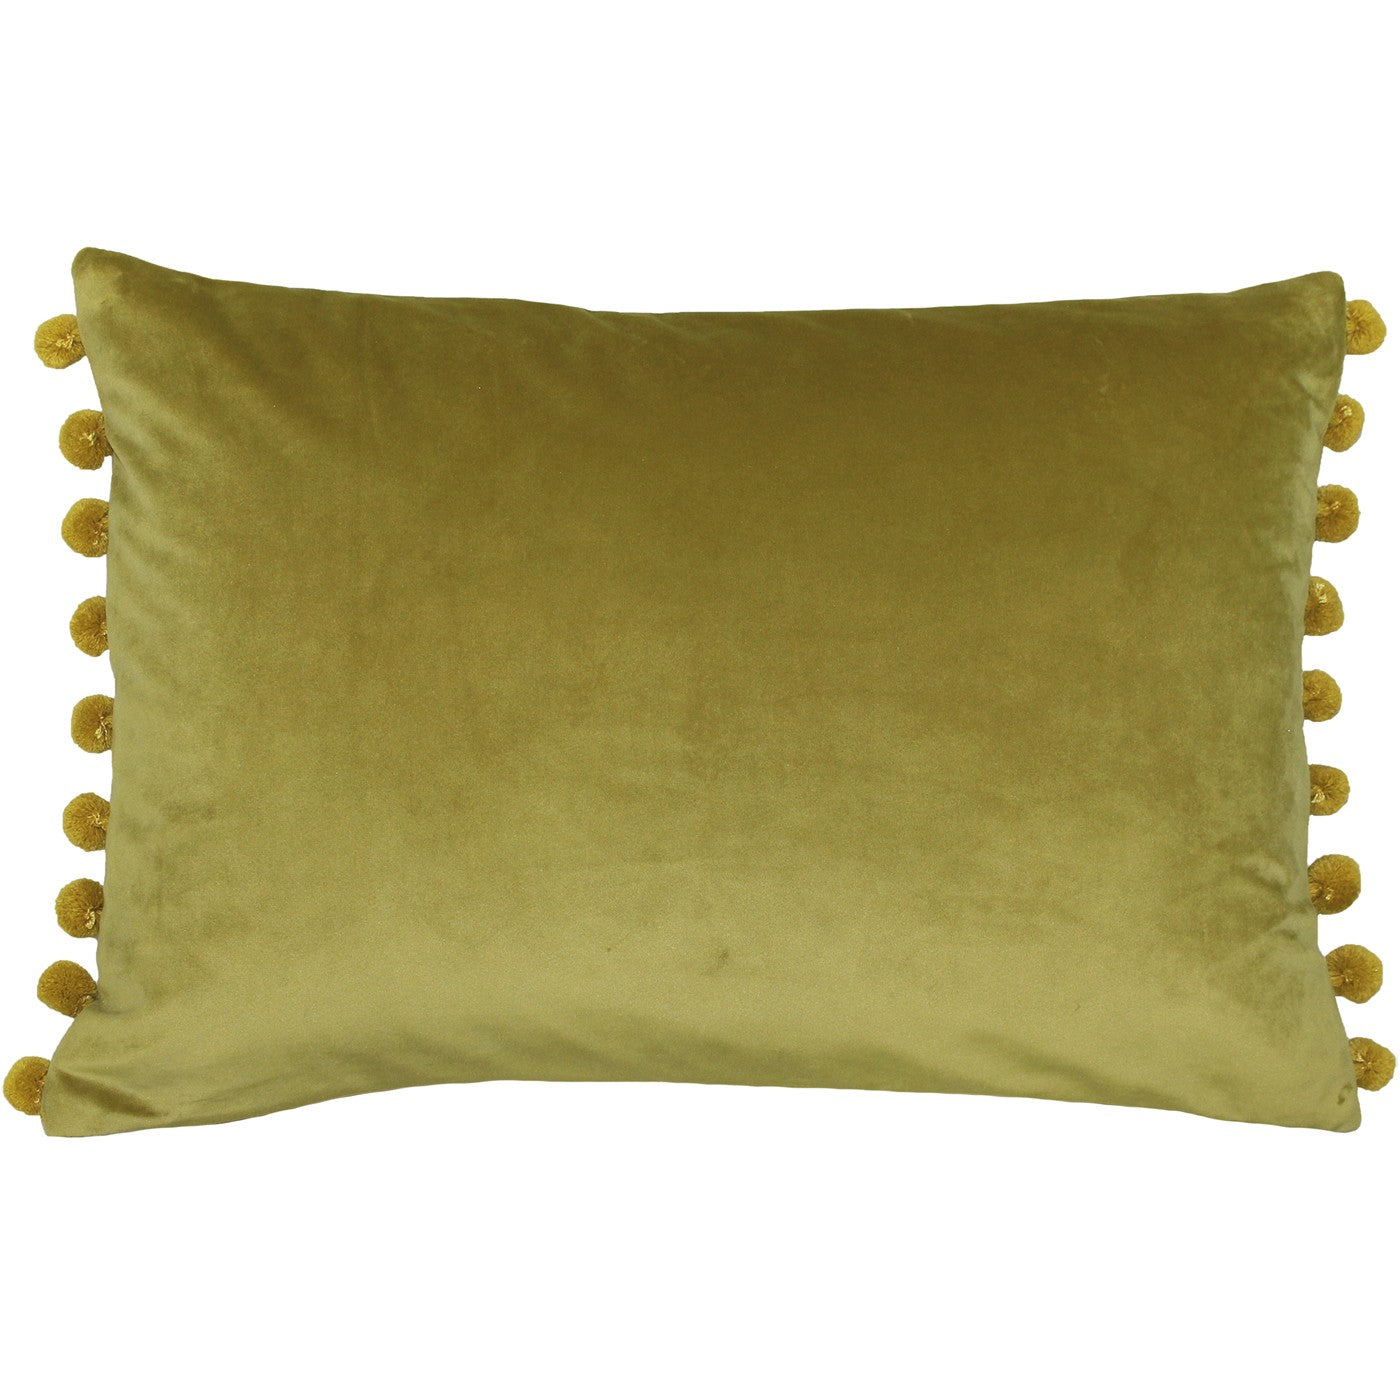 Bamboo Velvet Rectangle Cushion with Gold coloured Pom Poms